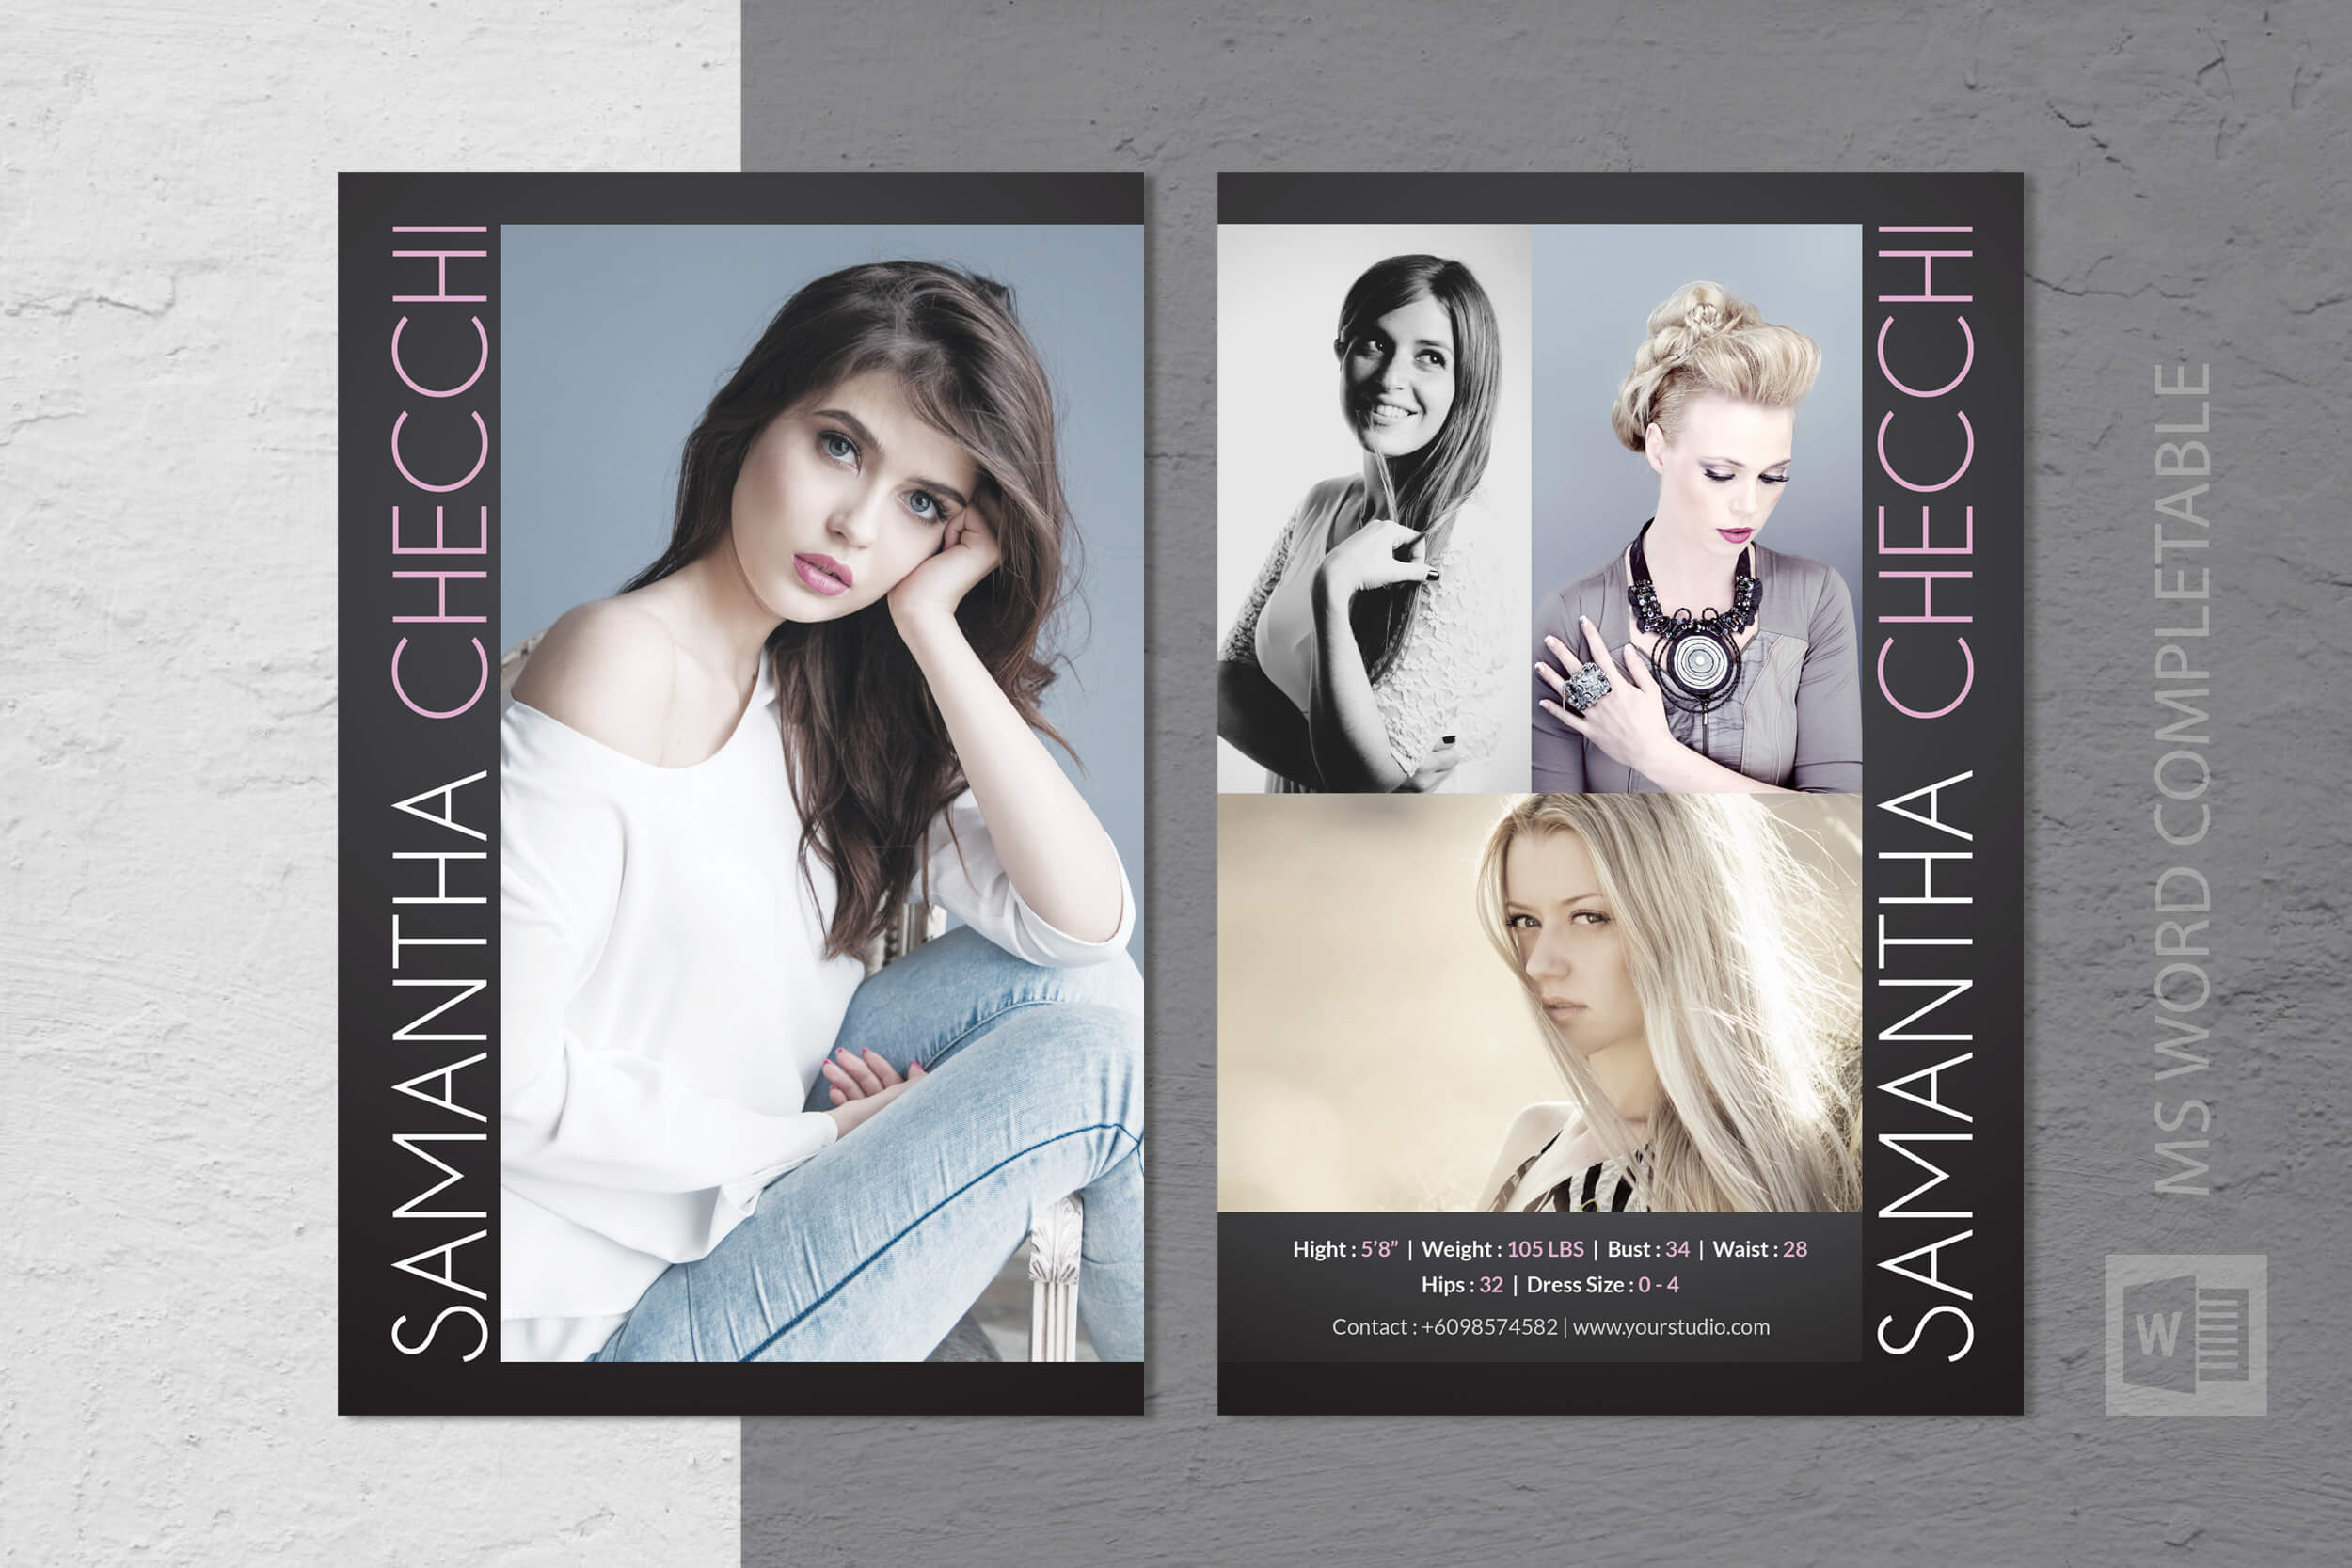 015 Model Comp Card Template Ideas Outstanding Psd Free Throughout Free Model Comp Card Template